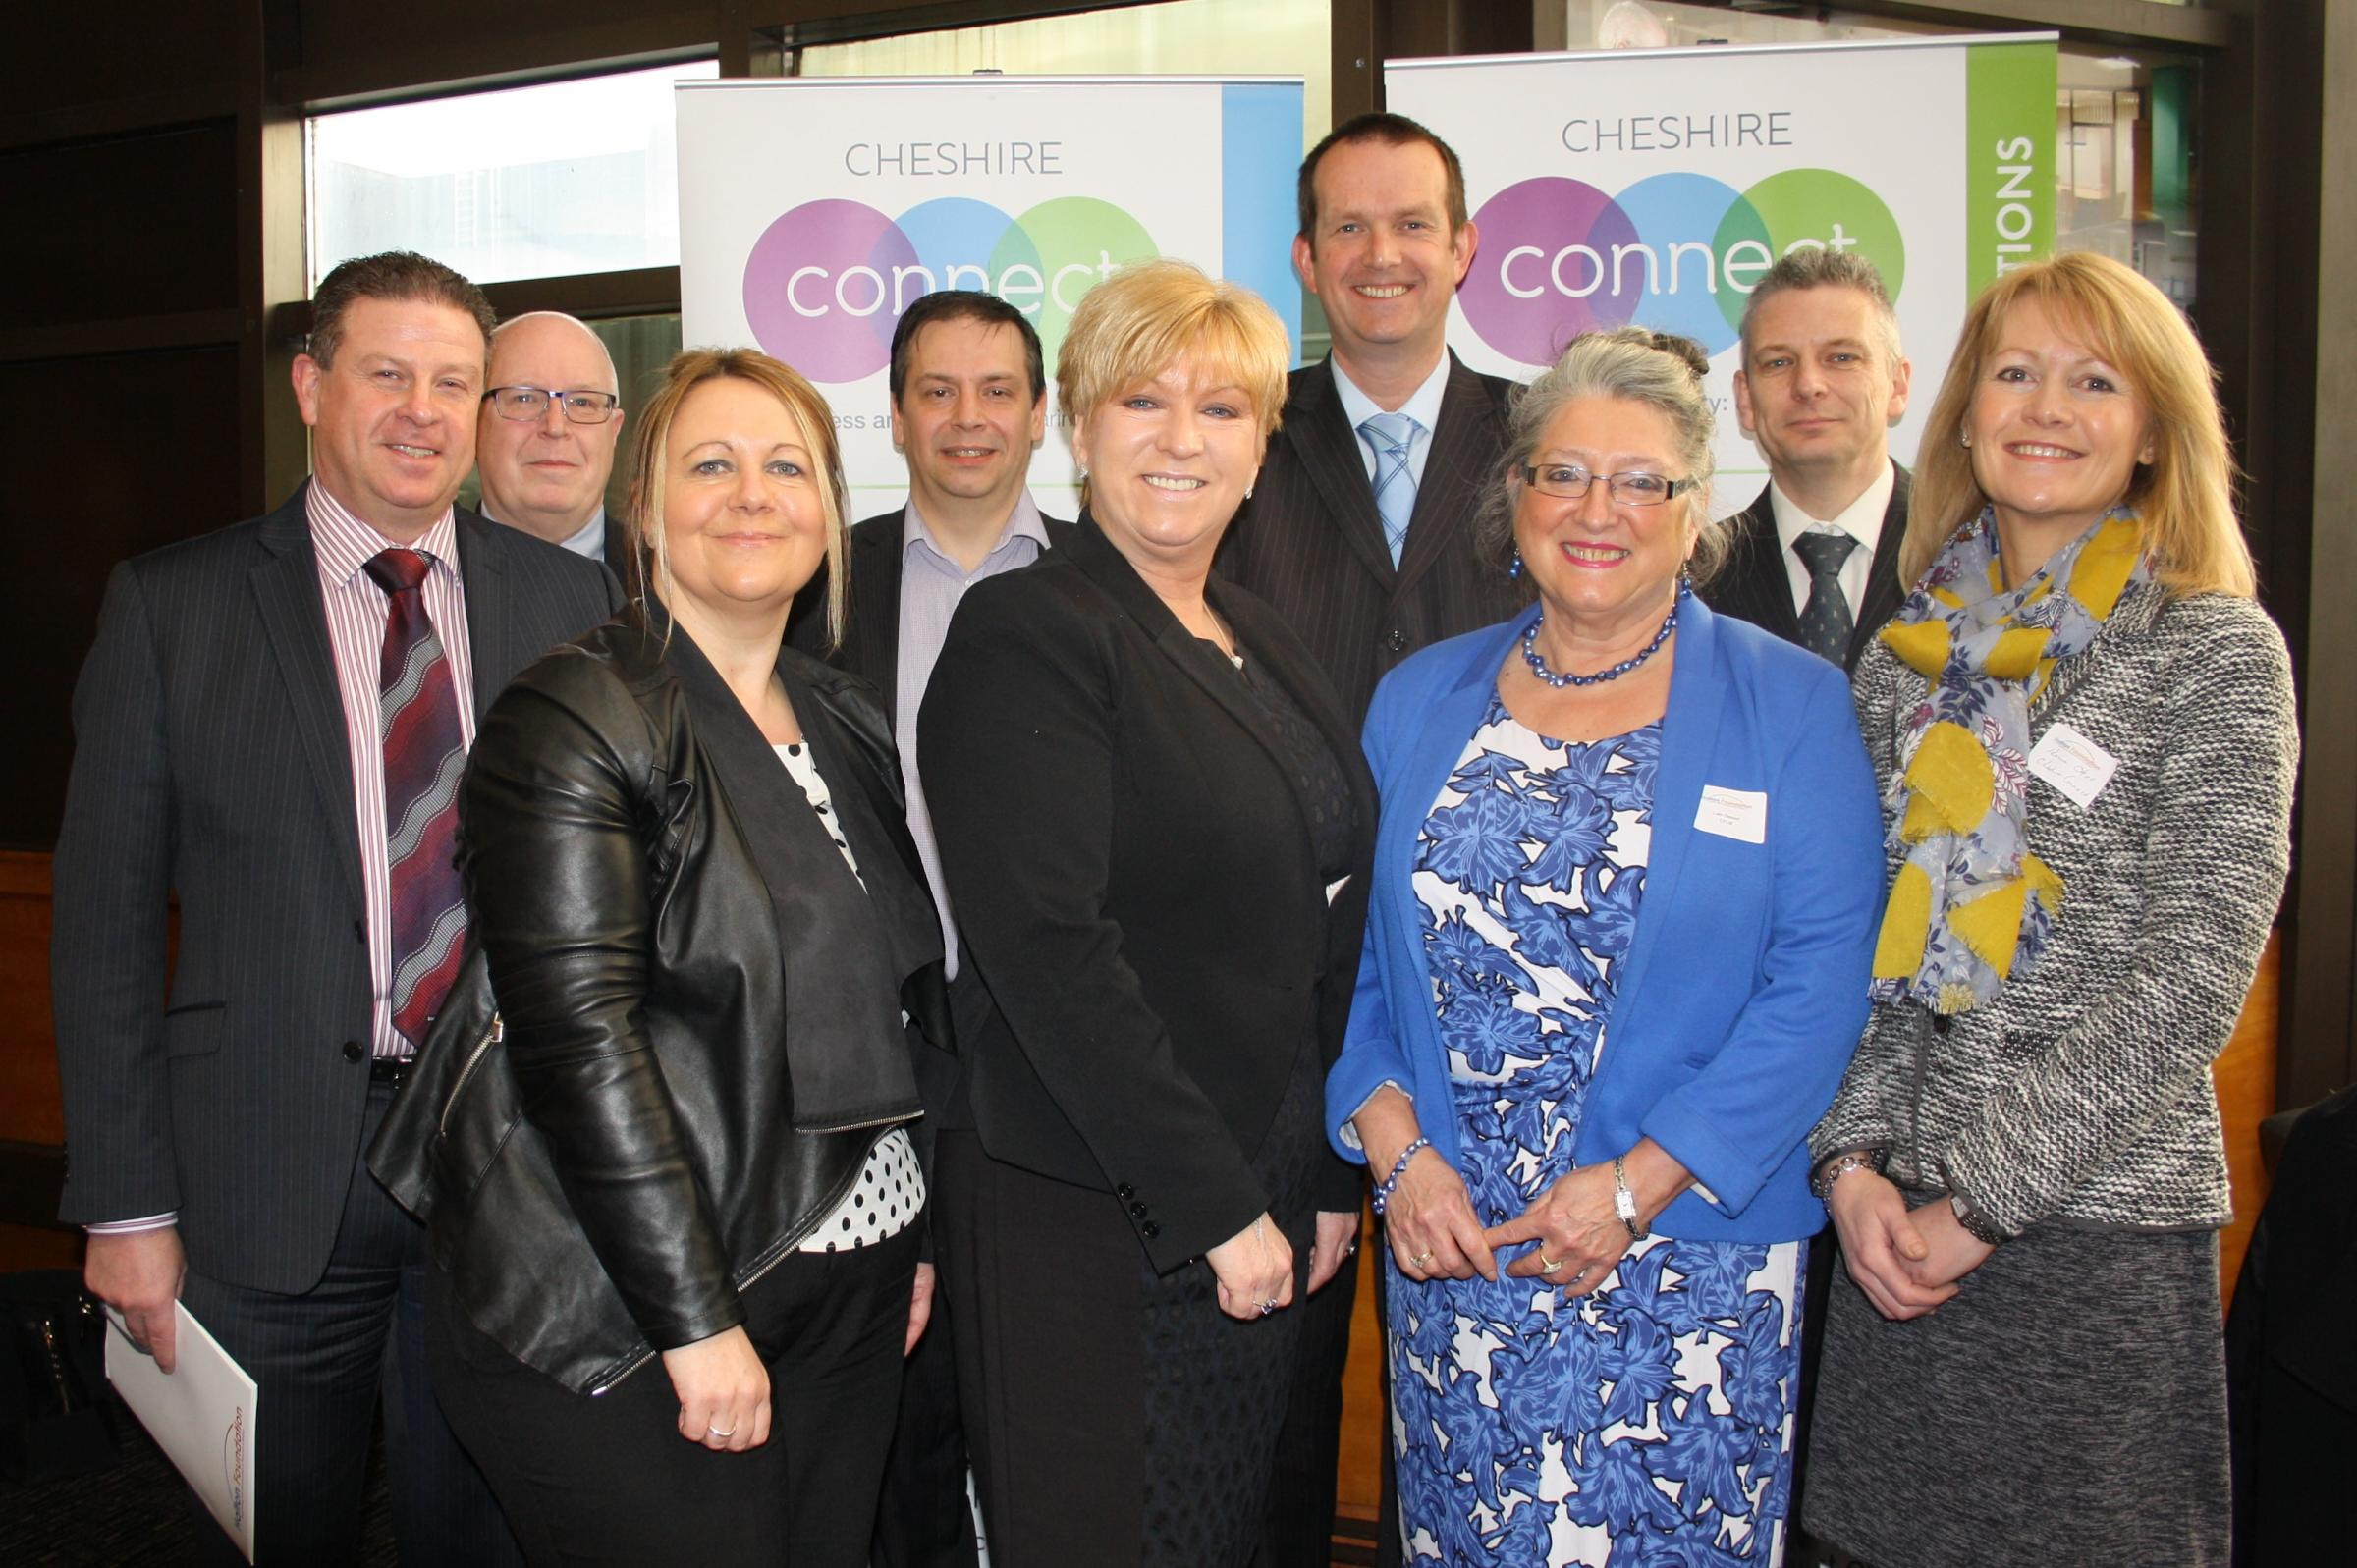 Halton business leaders come together to form a new partnership to support local charities